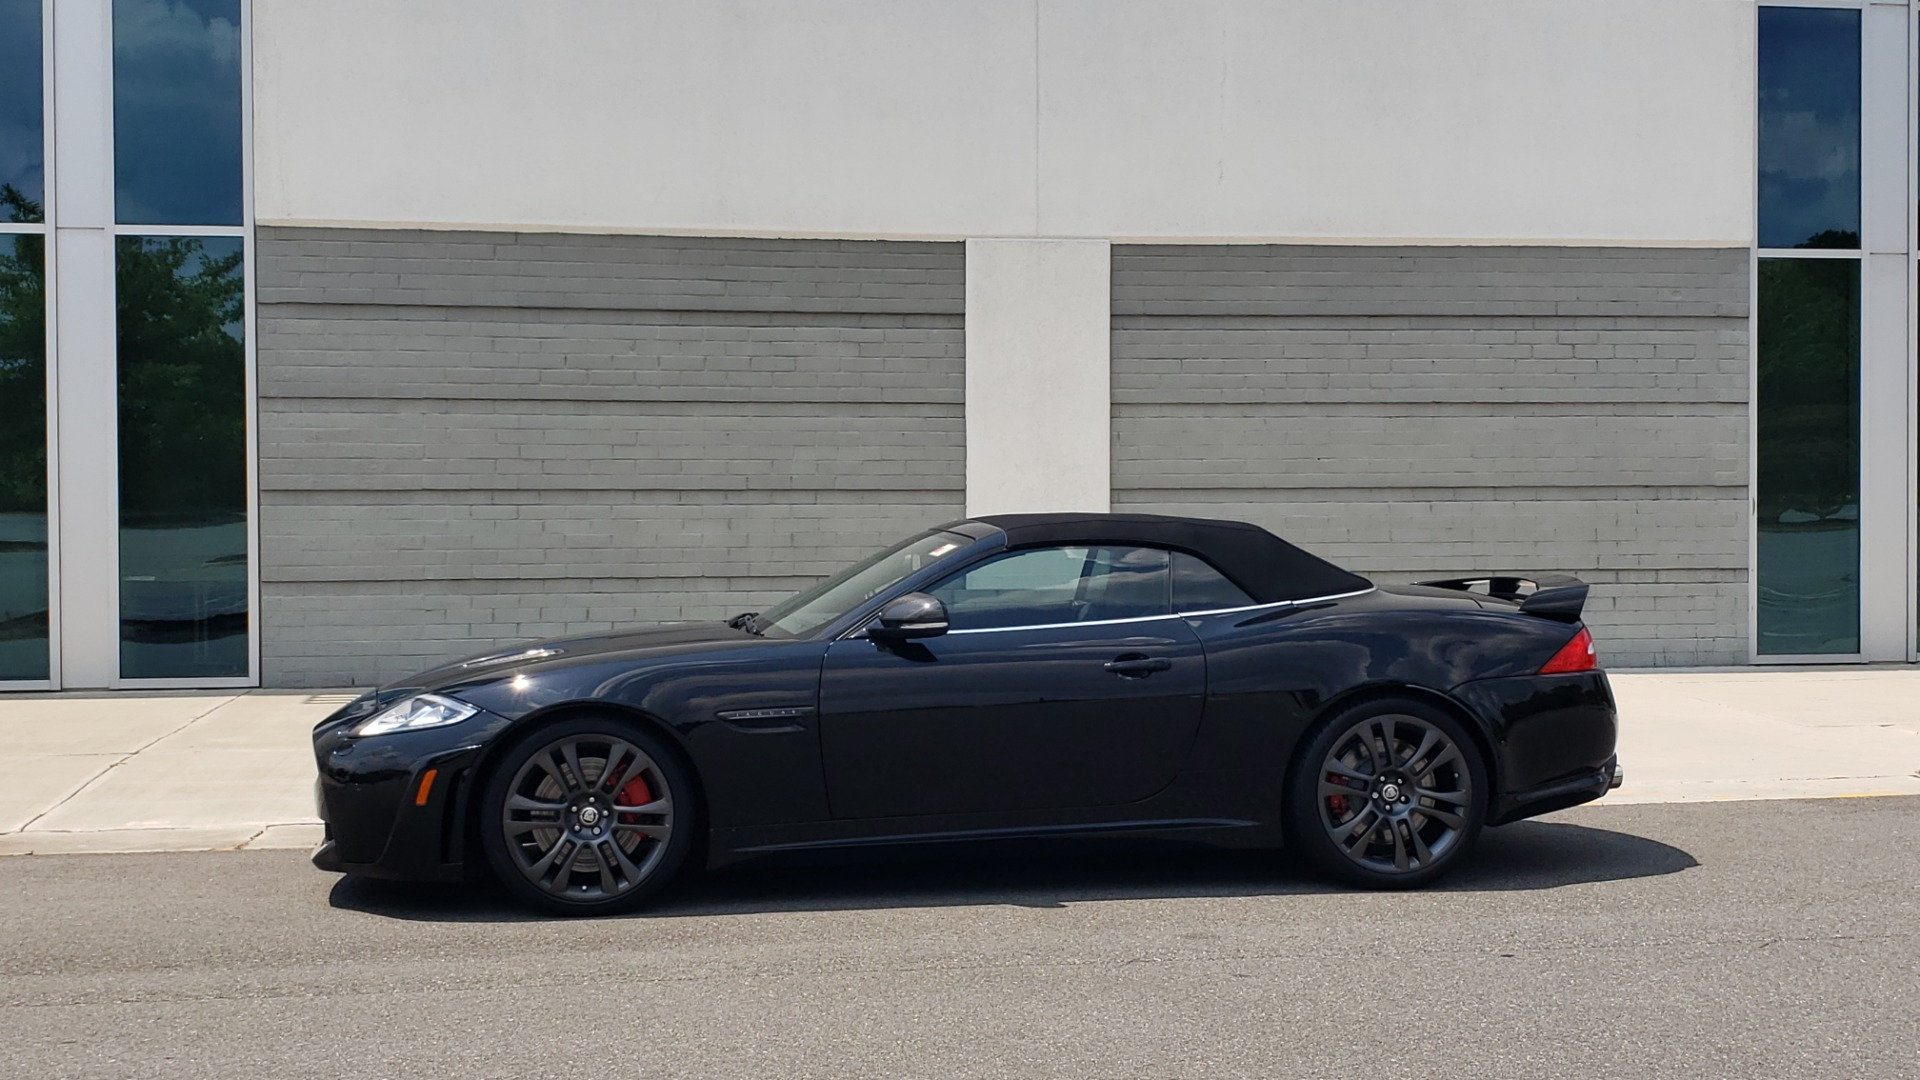 Used 2013 Jaguar XK R-S CONVERTIBLE / SC 5.0L V8 (550HP) / ZF 6-SPD AUTO / NAV / REARVIEW for sale $74,995 at Formula Imports in Charlotte NC 28227 8